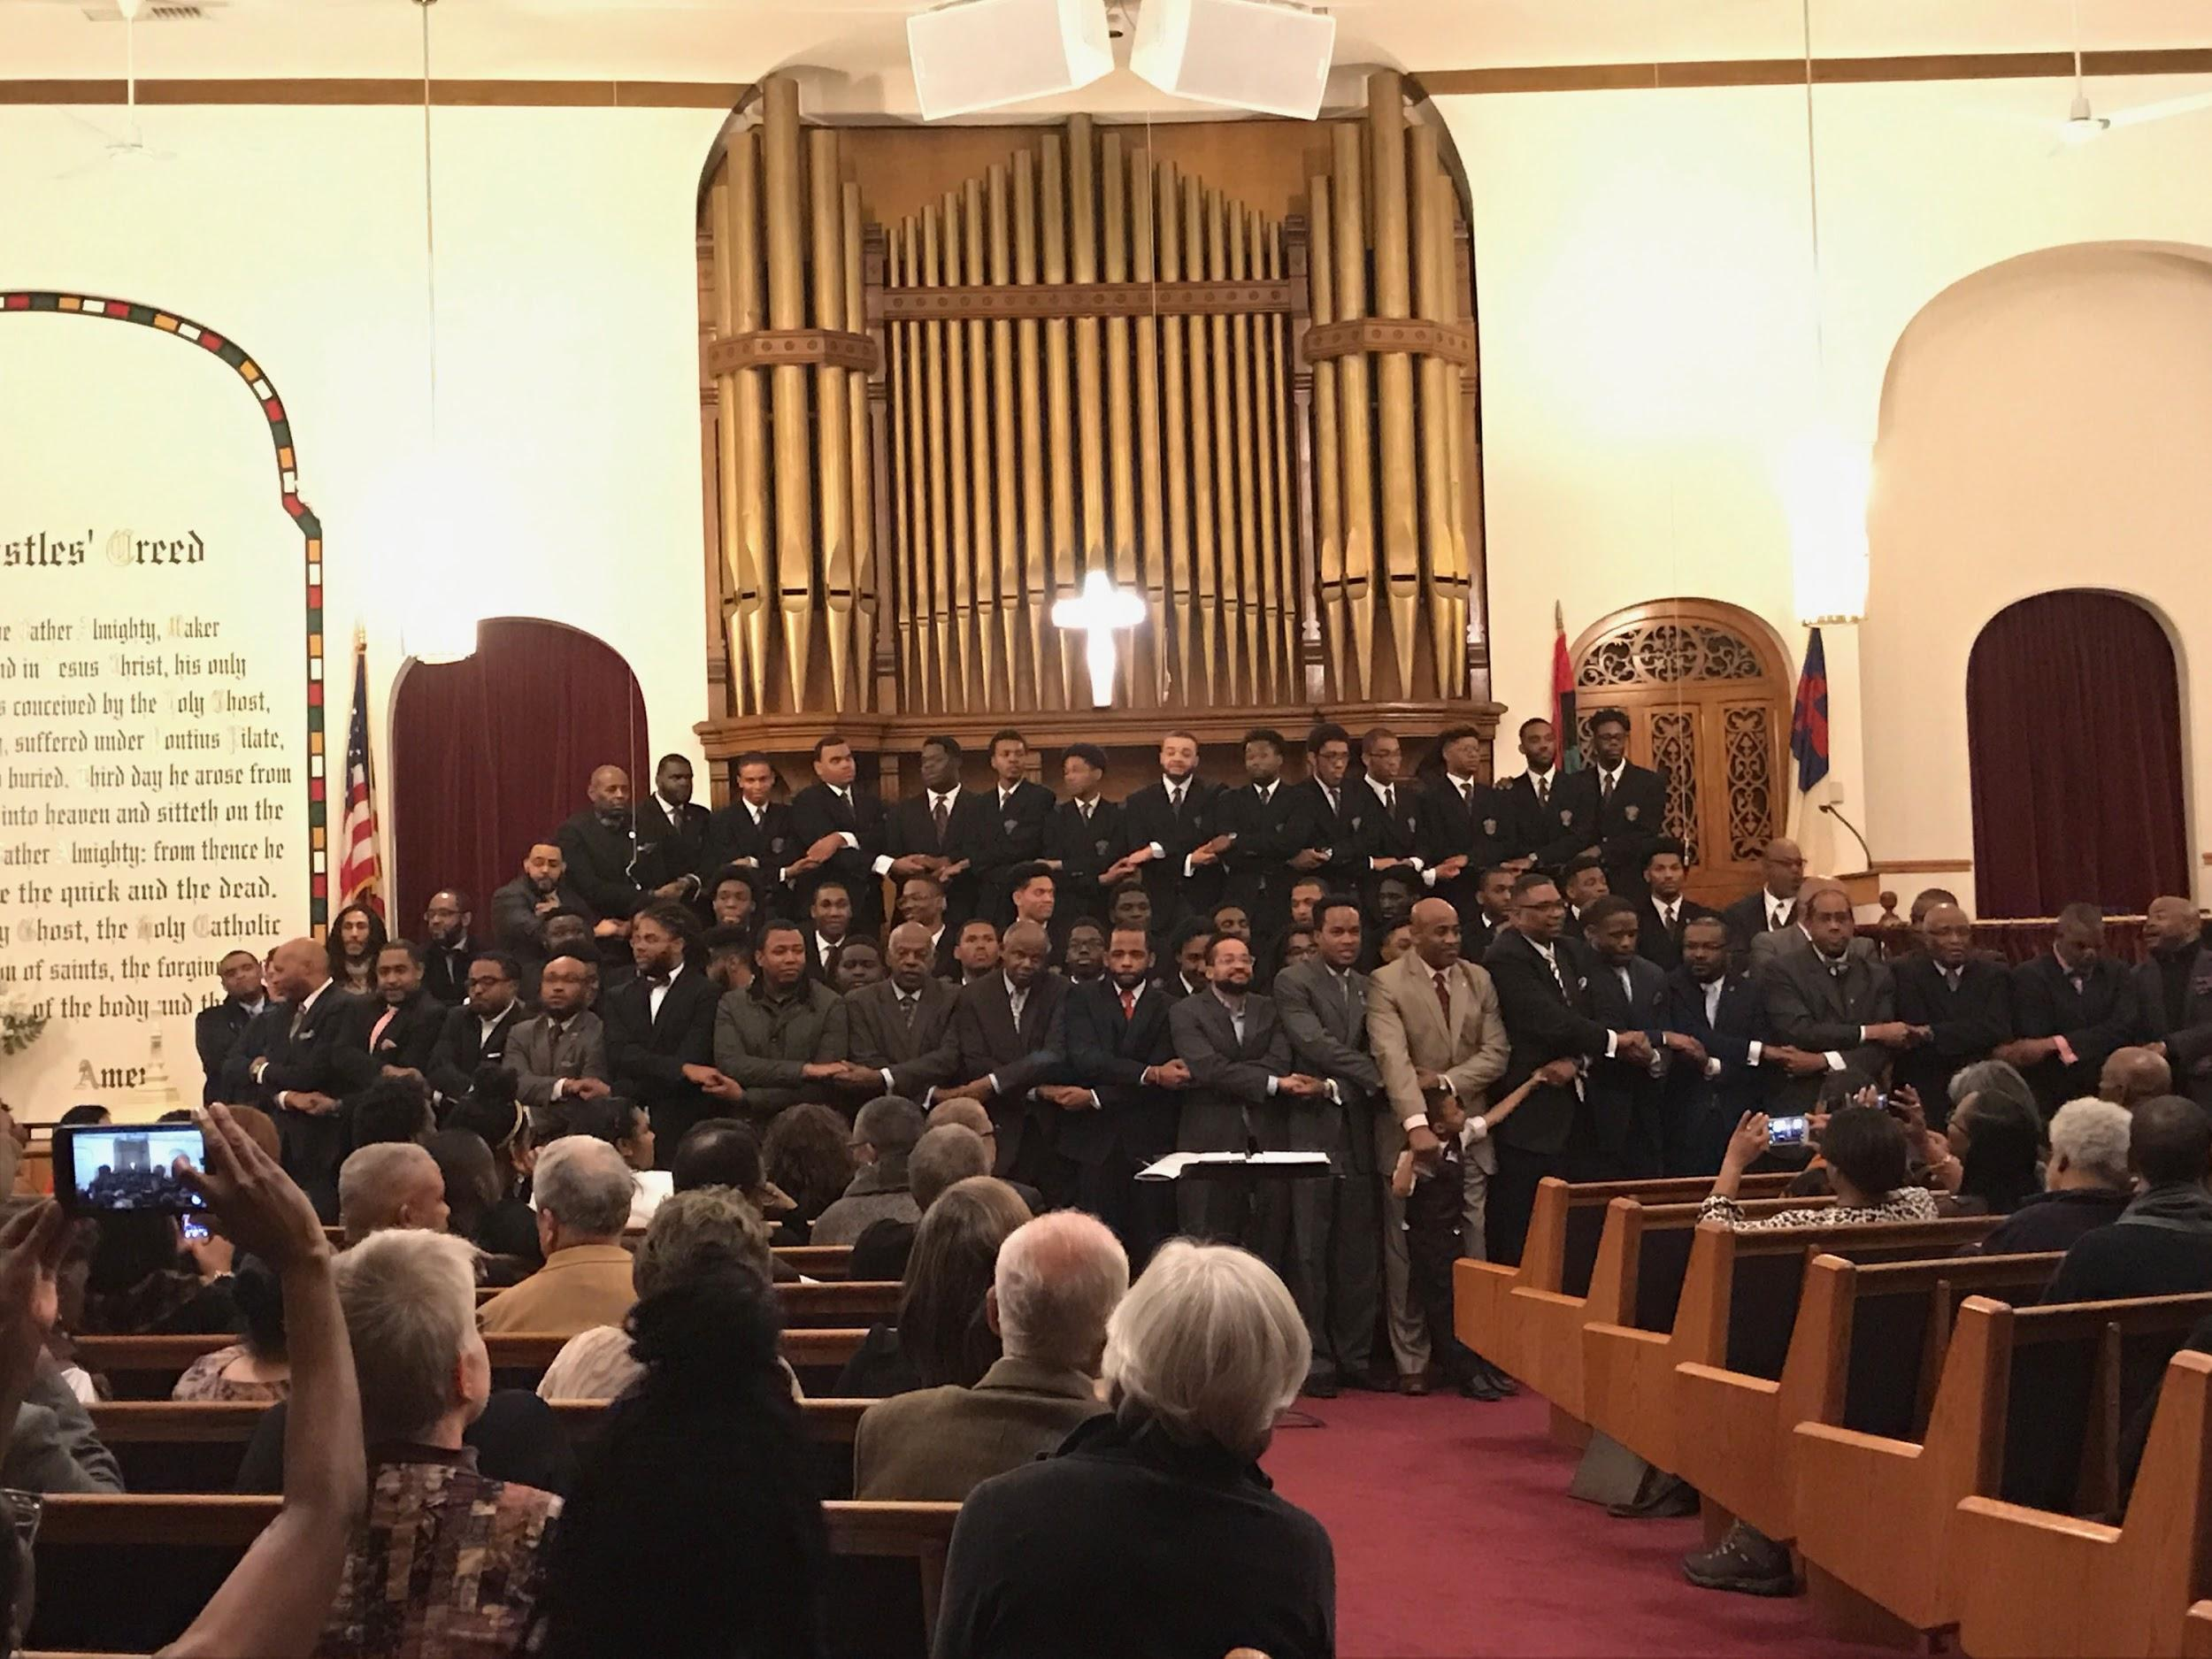 The Morehouse Glee Club and Morehouse Alumni holding hands and singing together.